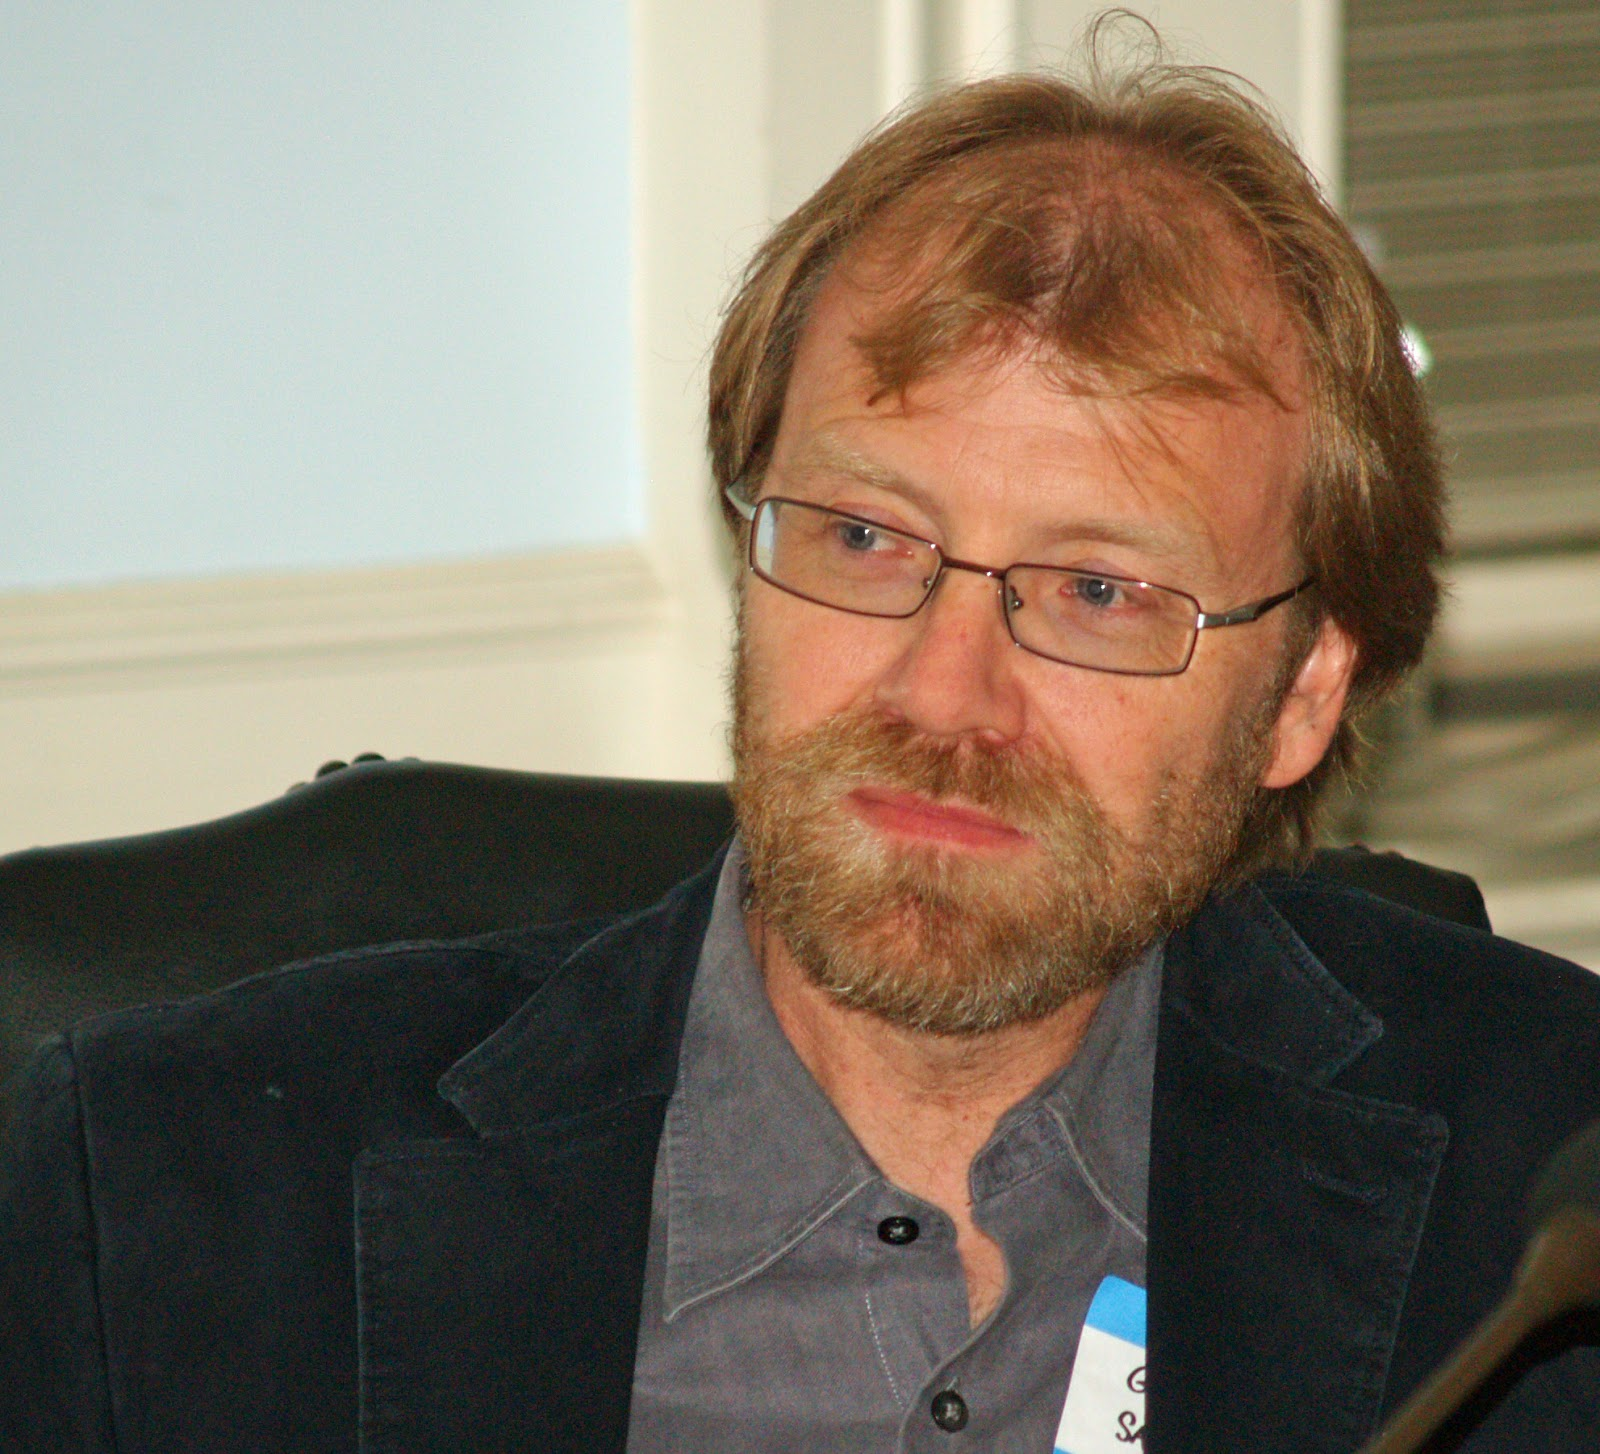 Photo of George Saunders. Source: http://upload.wikimedia.org/wikipedia/commons/0/0c/George_Saunders_by_David_Shankbone.jpg